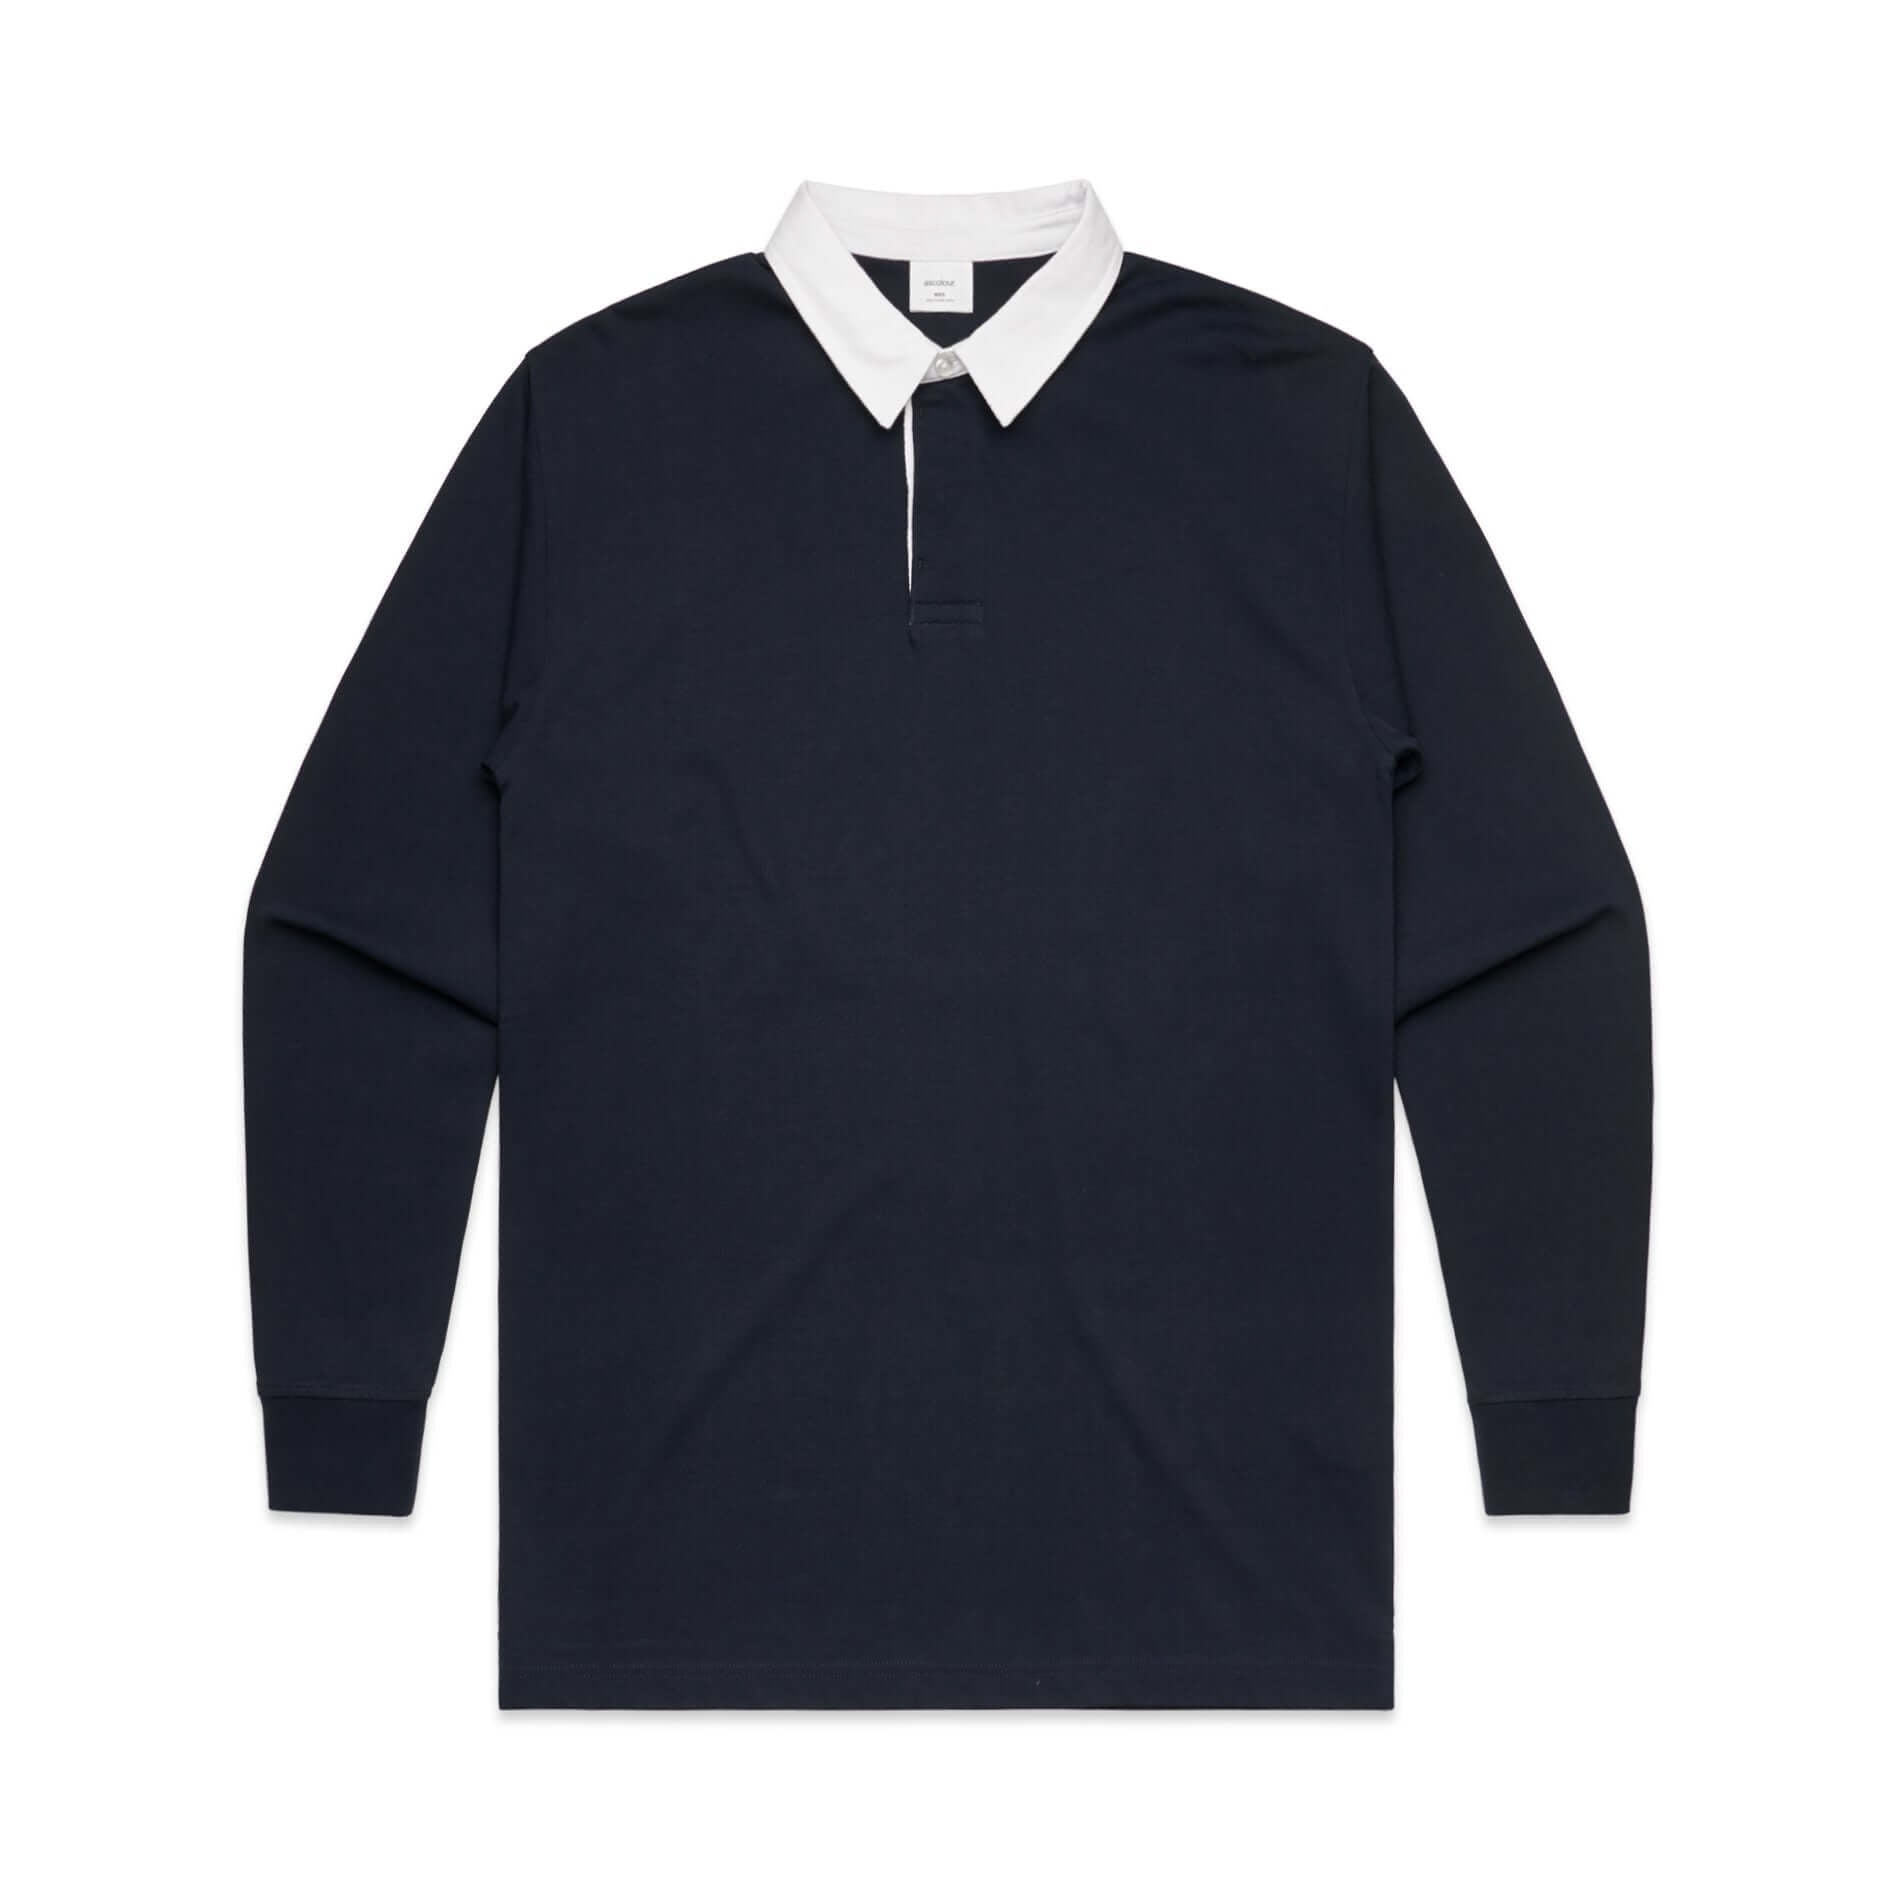 AS Colour RUGBY JERSEY - Navy